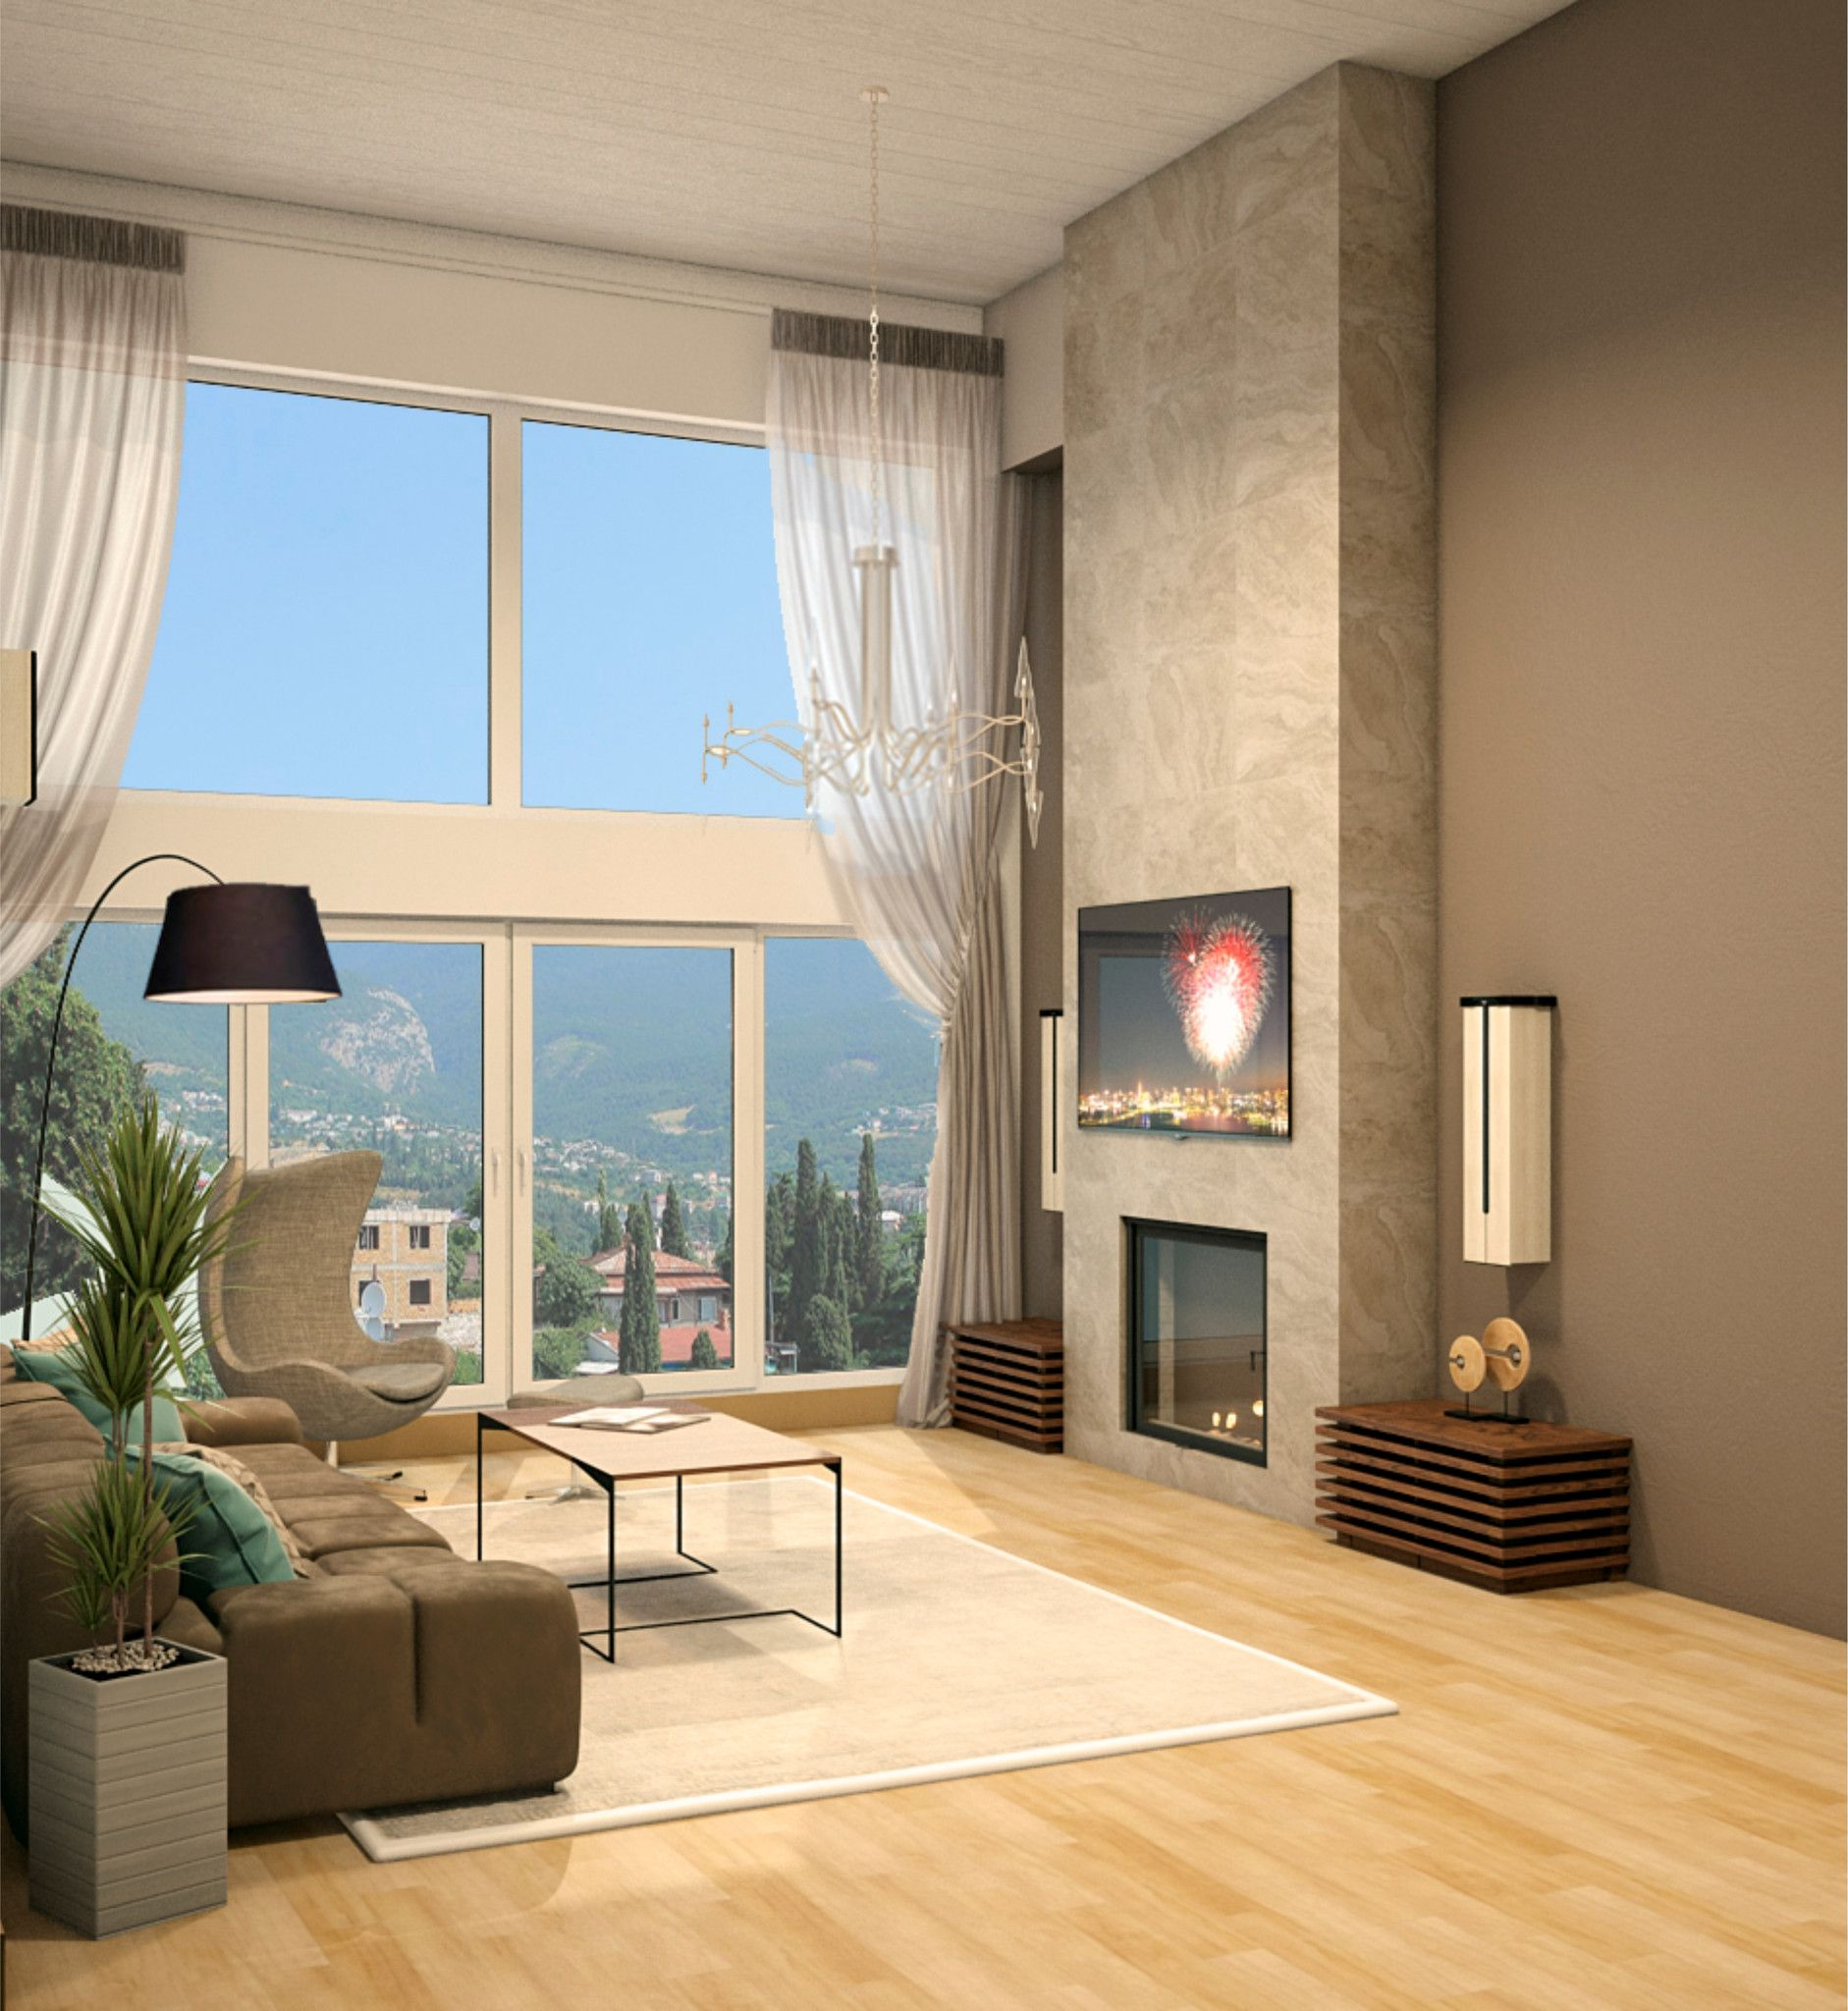 Living Room Design Online Fair Thinking Of Shopping Emfurn But Not Sure How Your Room Will Appear Design Decoration